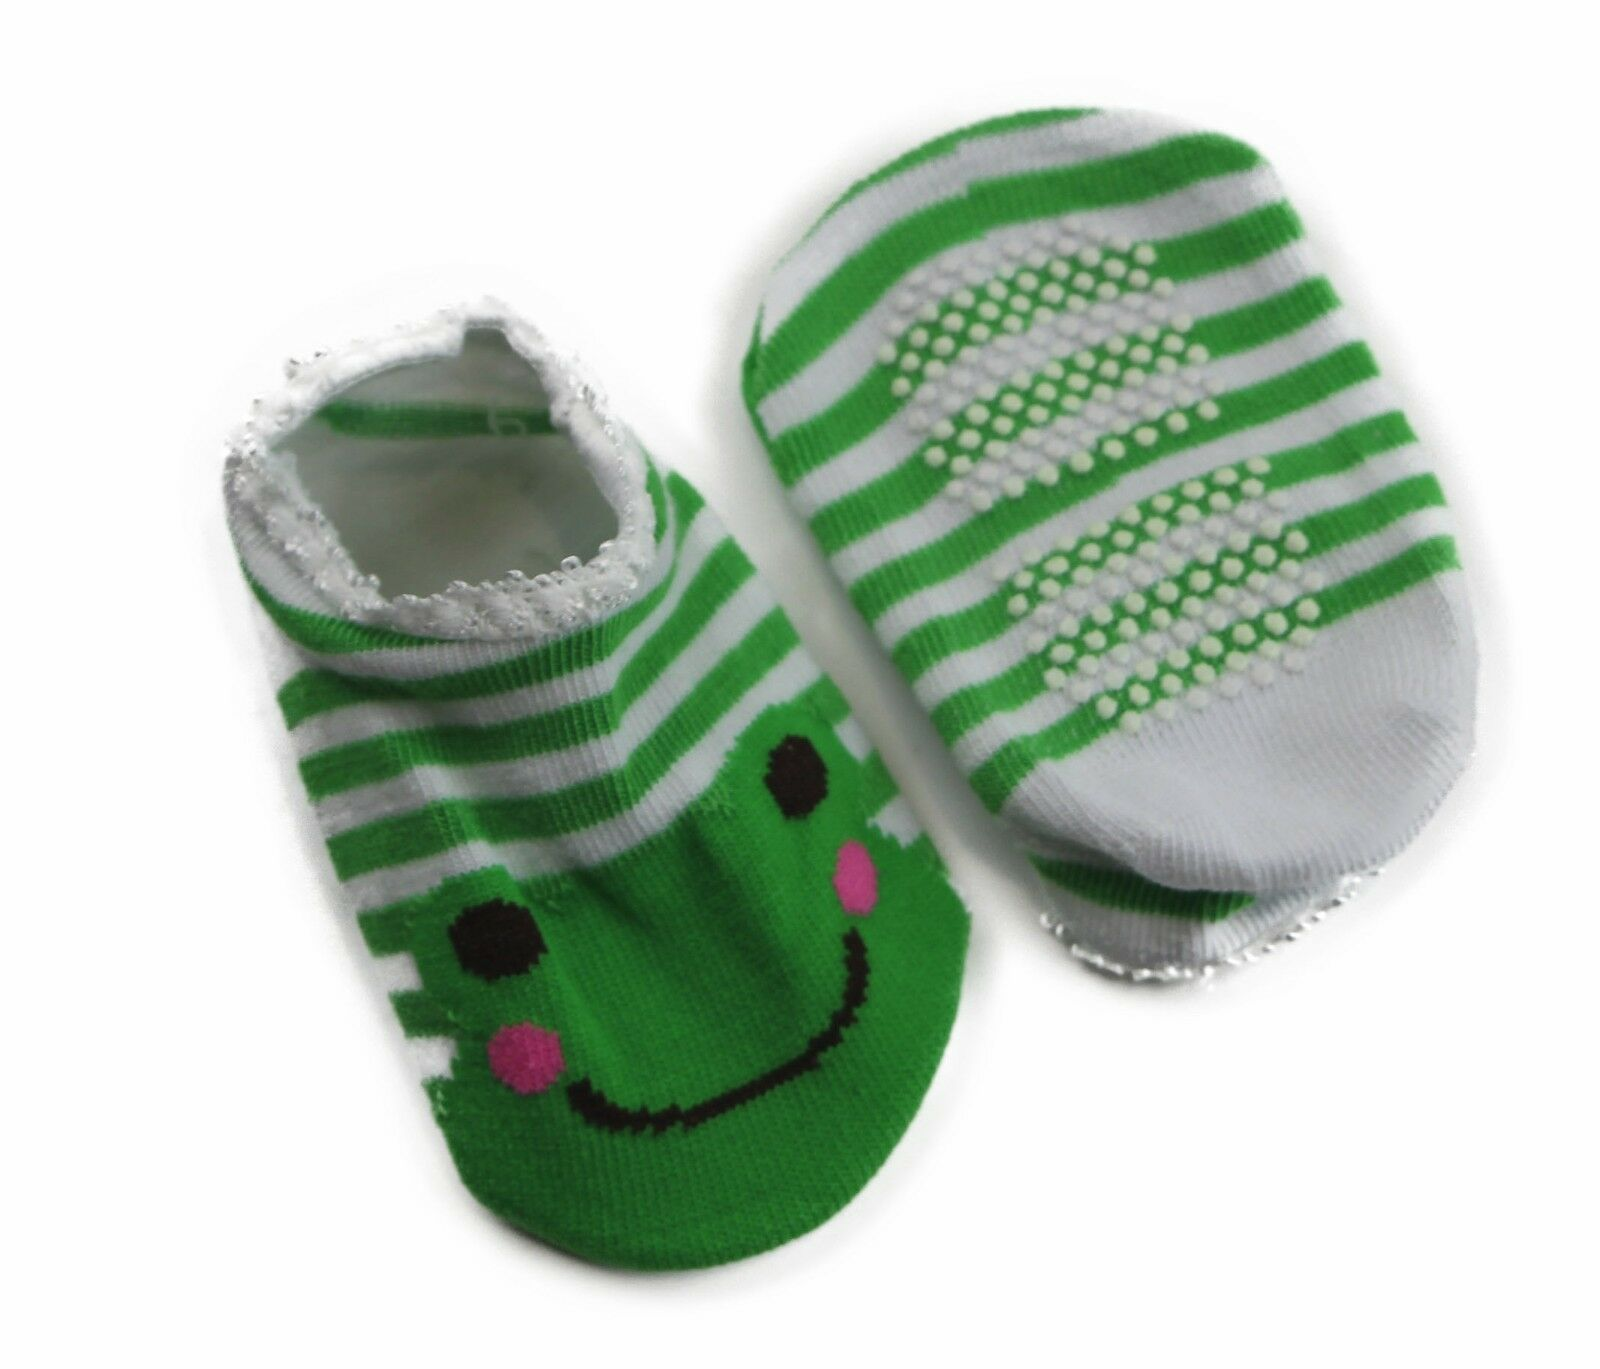 thumbnail 23 - Baby Footlets Kids Toddler Cotton Socks Anti Slip Grip Boys Girls 6-18 Months